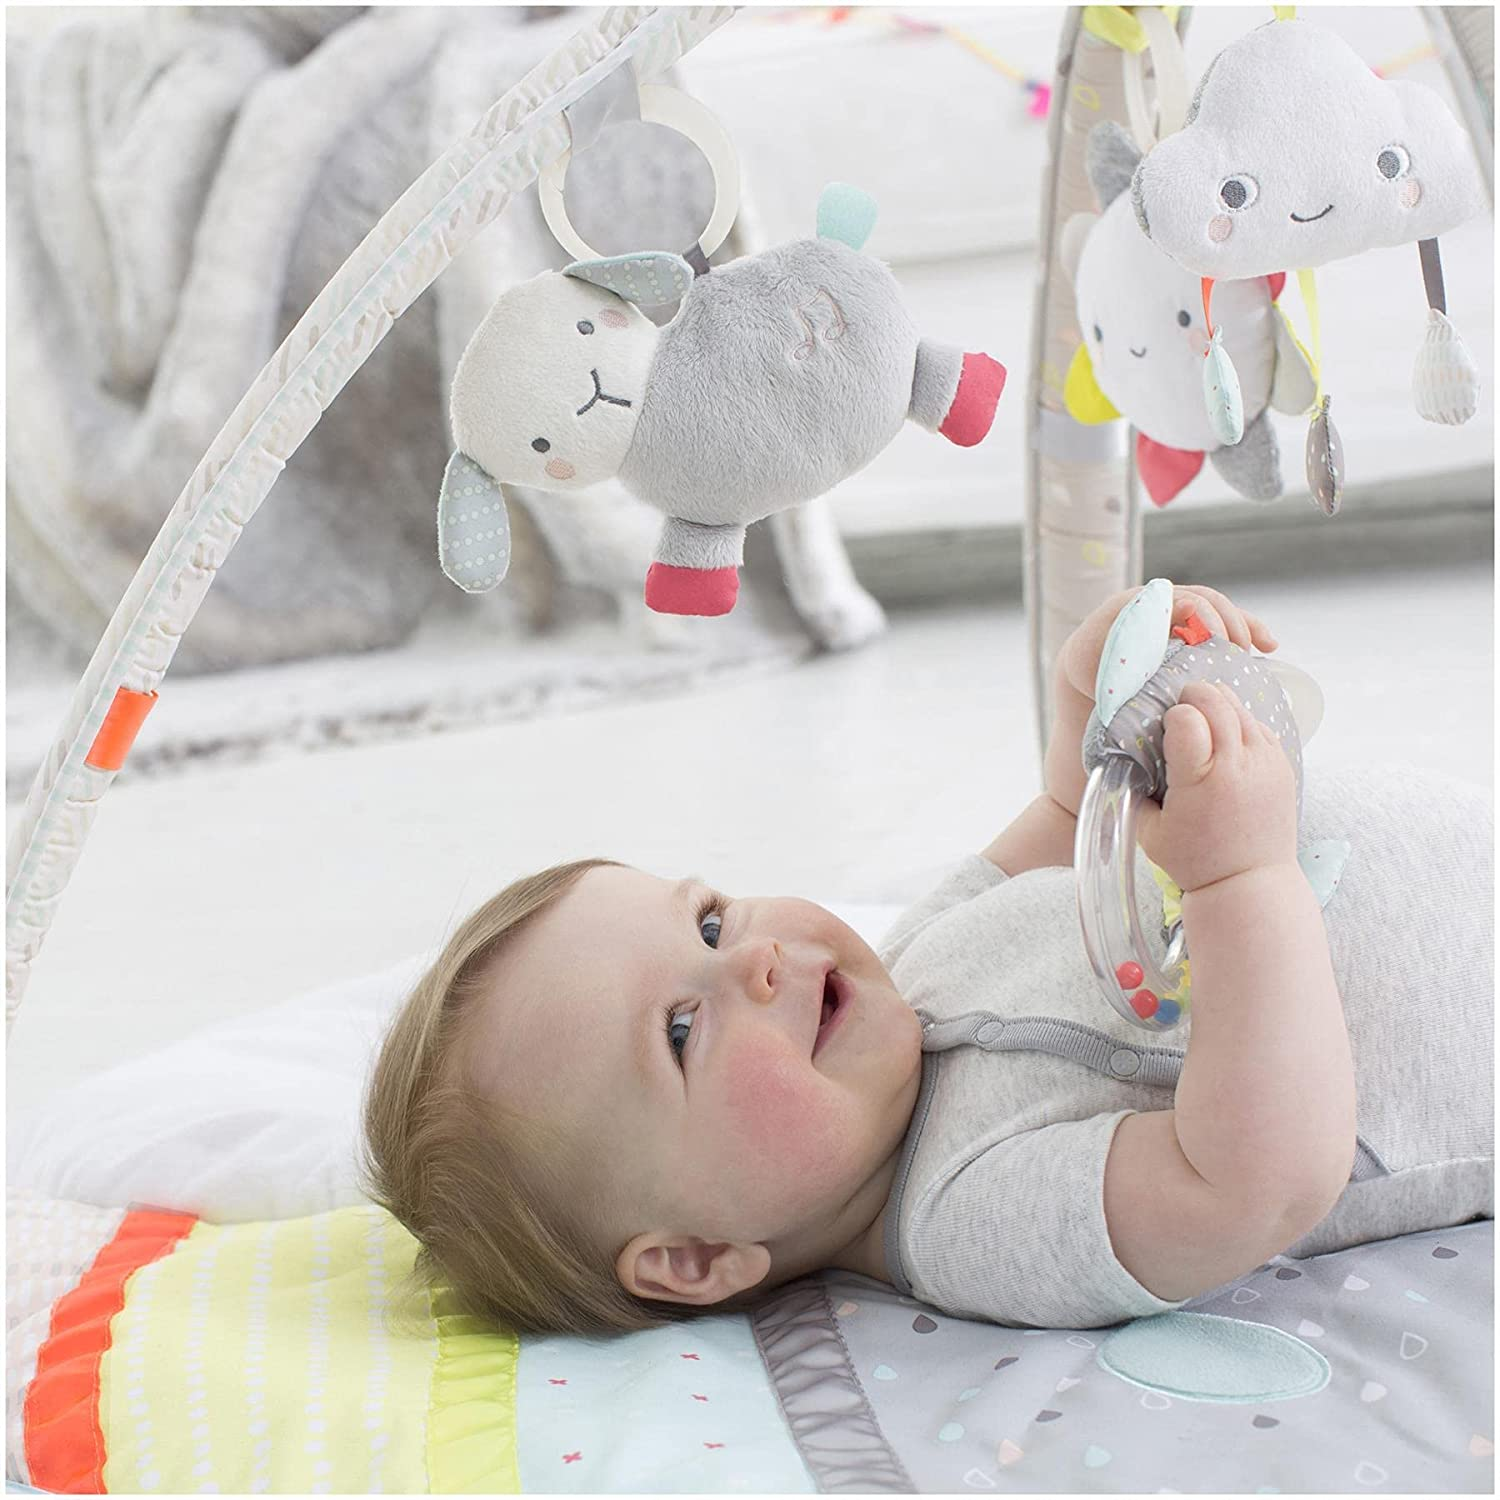 5 Best Baby Gyms for Development 2021 [How to Buy]